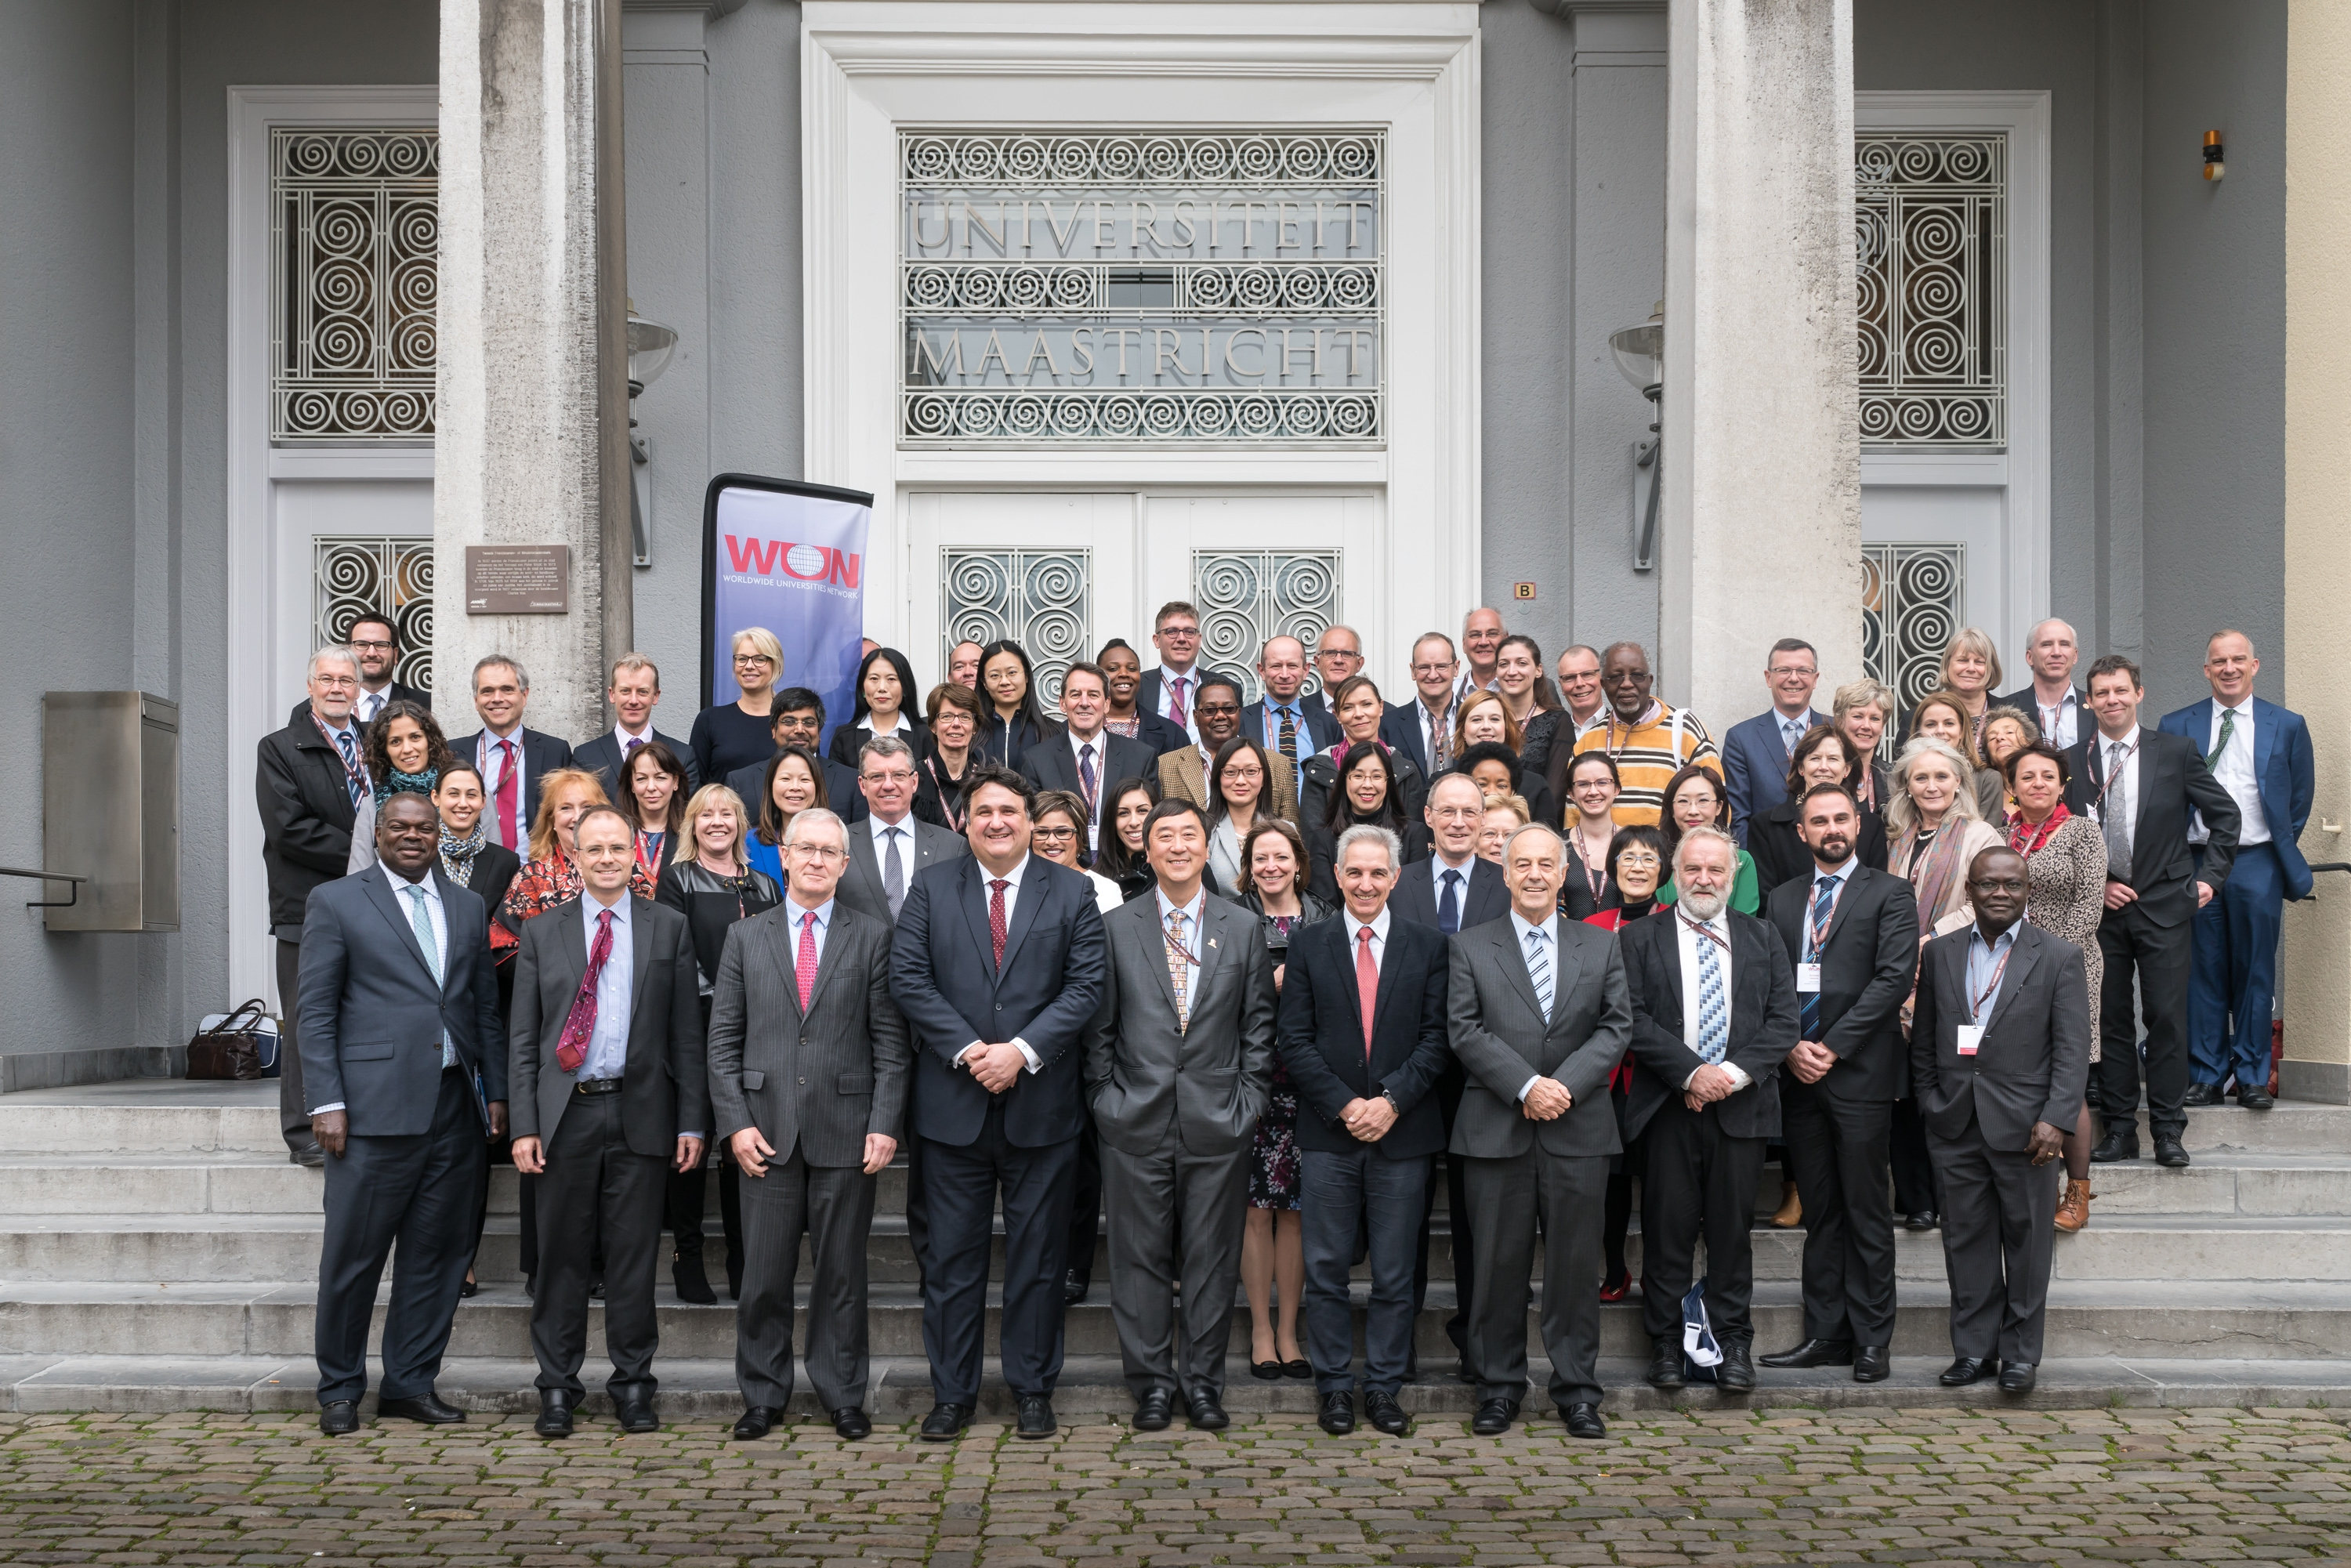 Representatives from member universities gather for a group photo at the WUN Conference and AGM 2016 in Maastricht